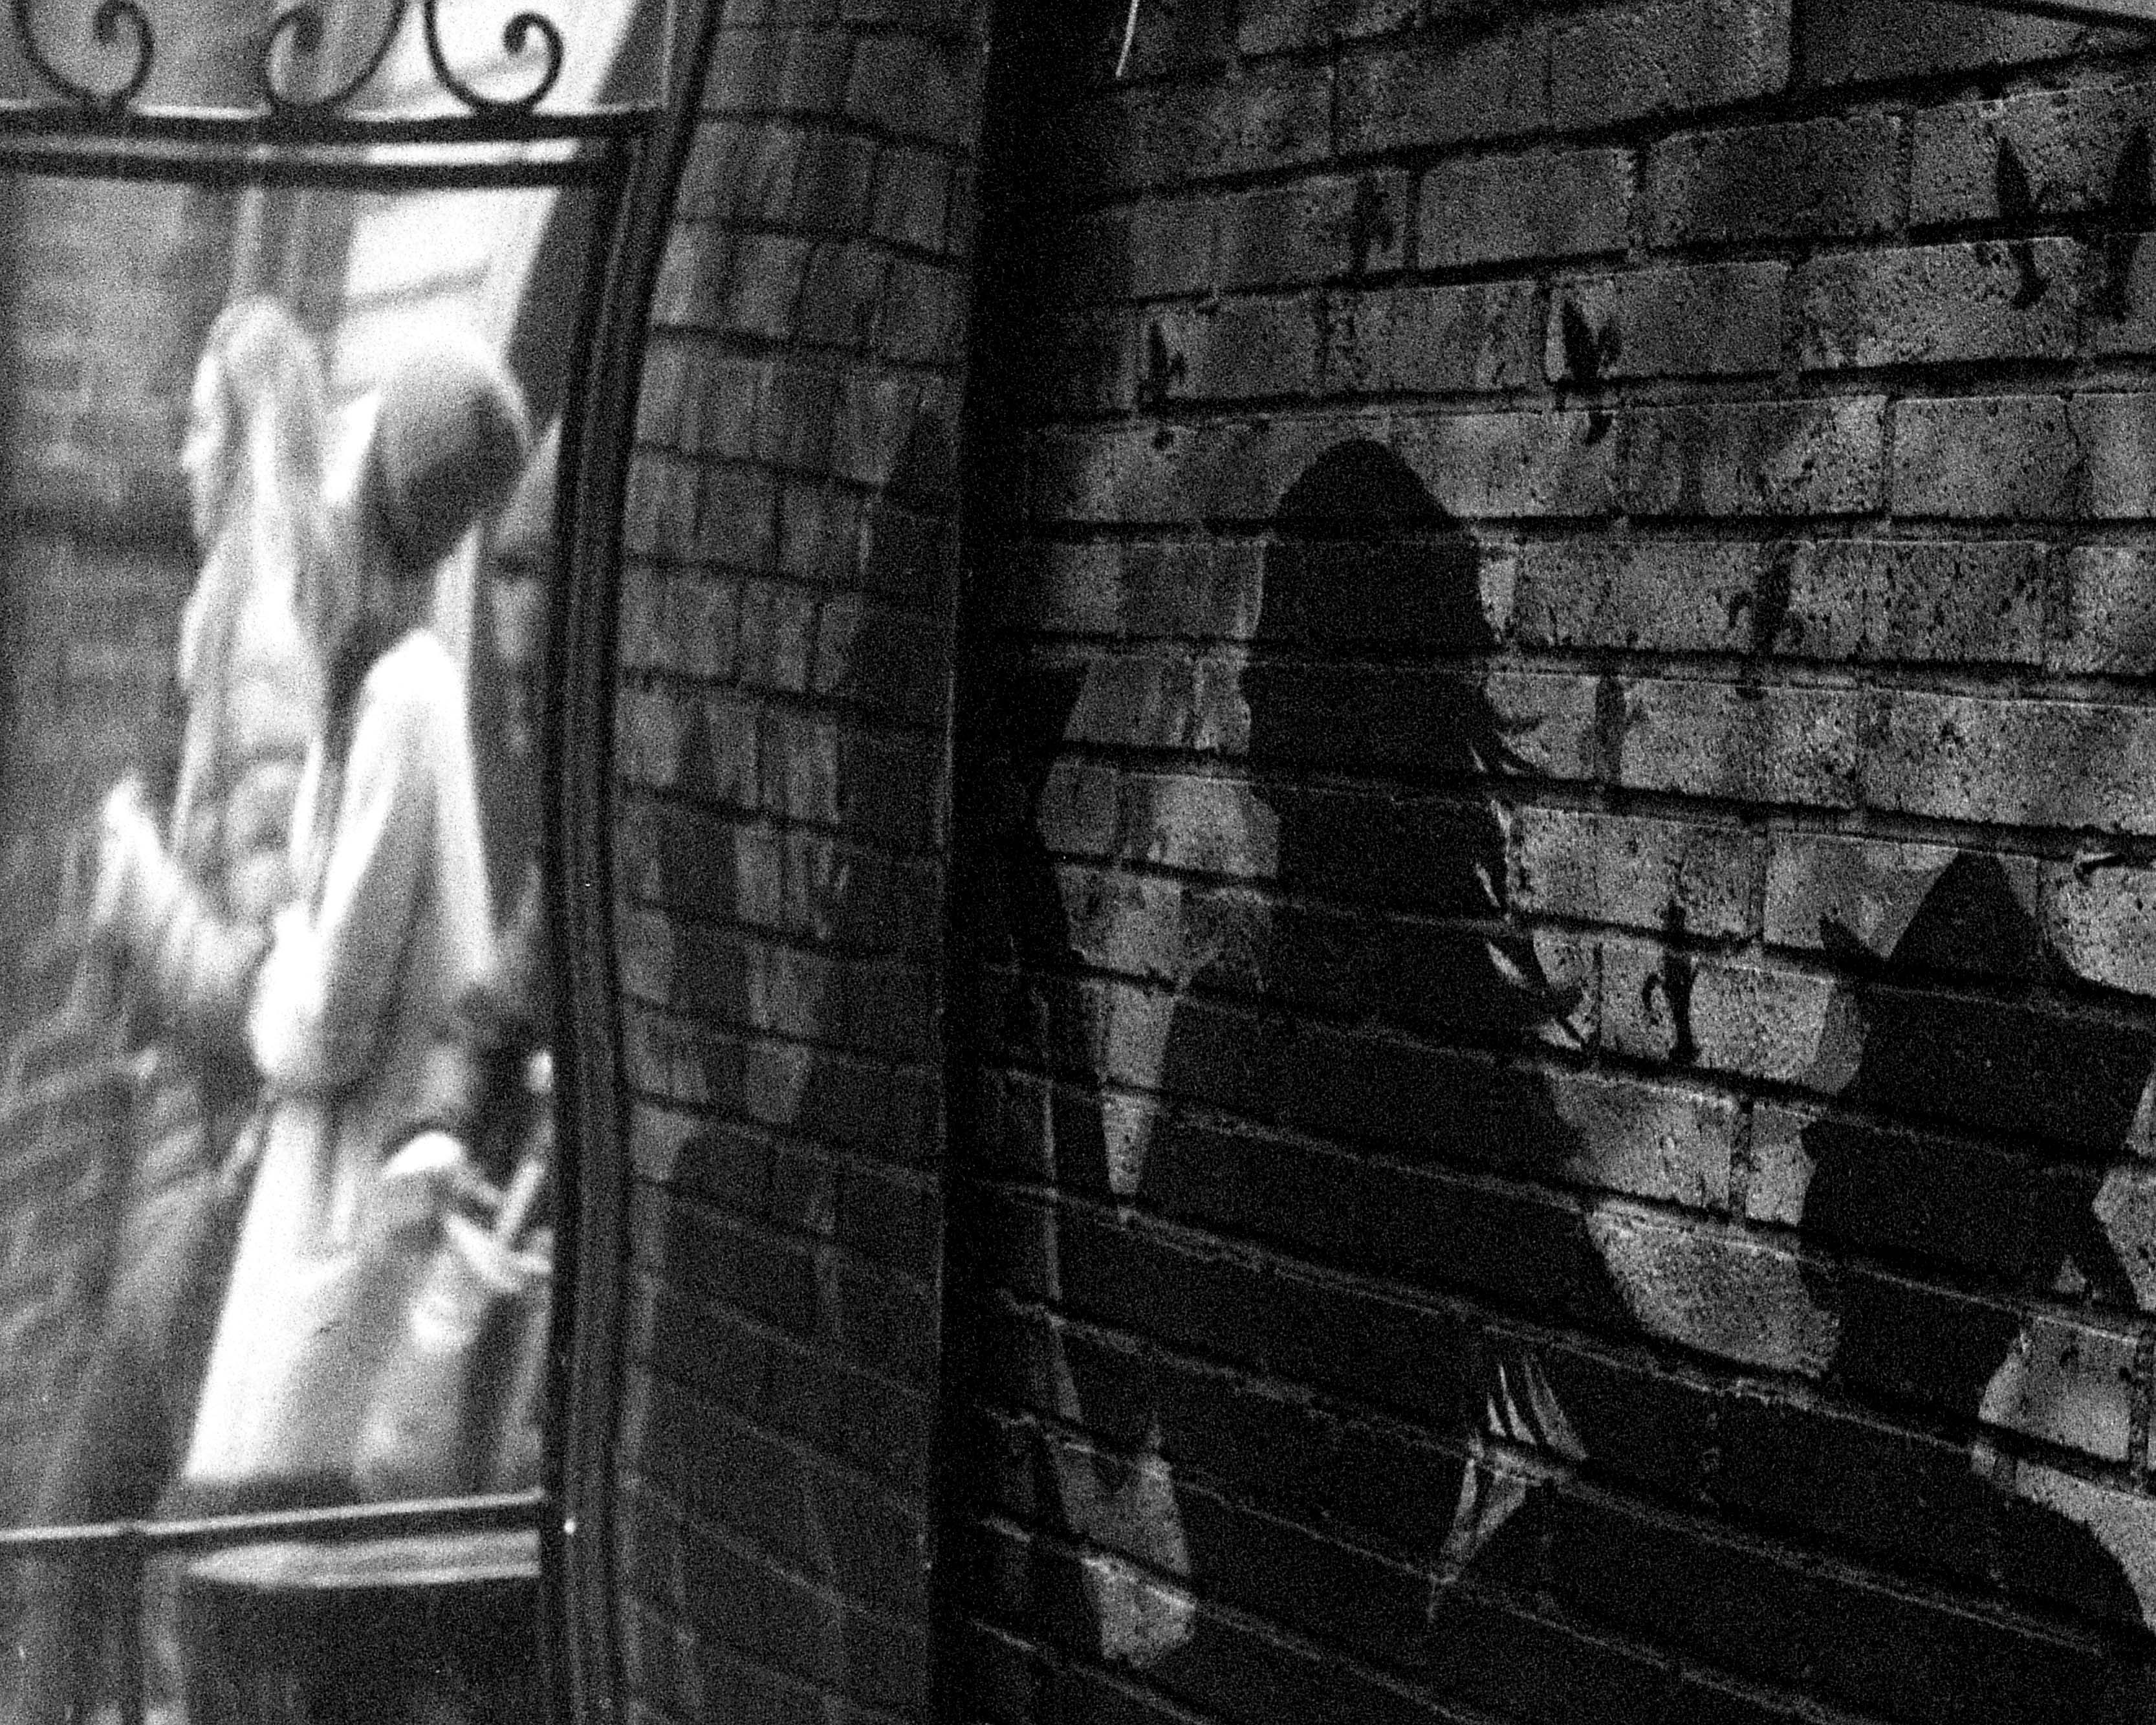 a black and white photograph of a wall and a mirror showing reflections of people